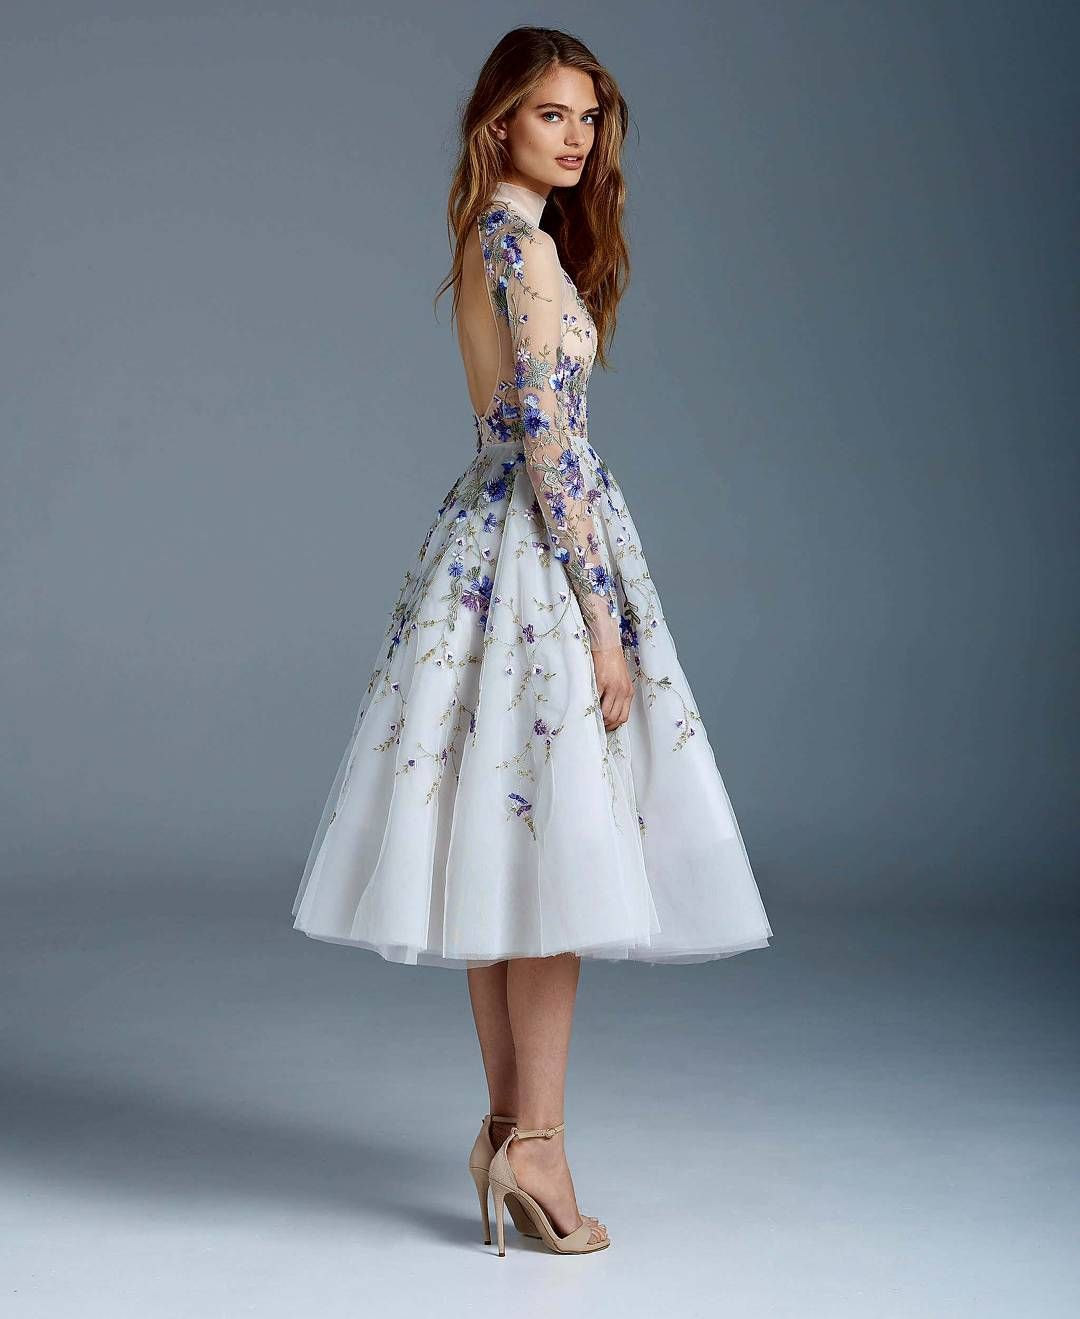 Classy vow renewal dresses pinterest classy gowns and clothes